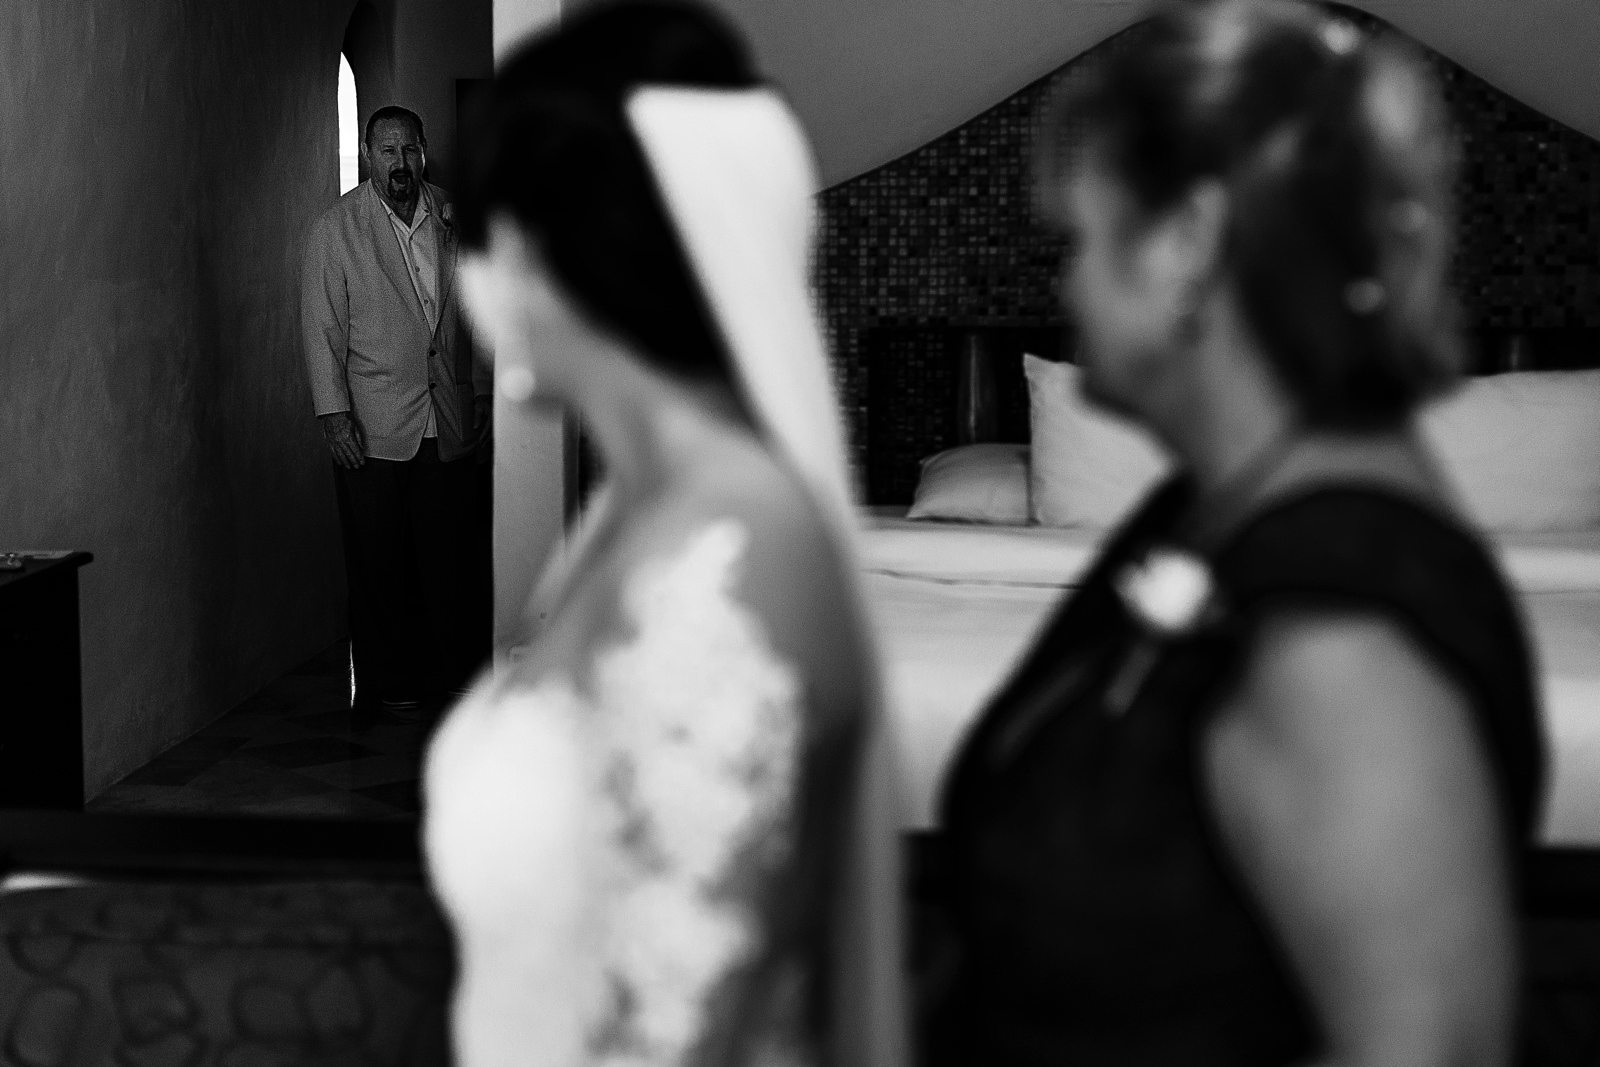 Father of the bride walking into the bridal suite before the ceremony